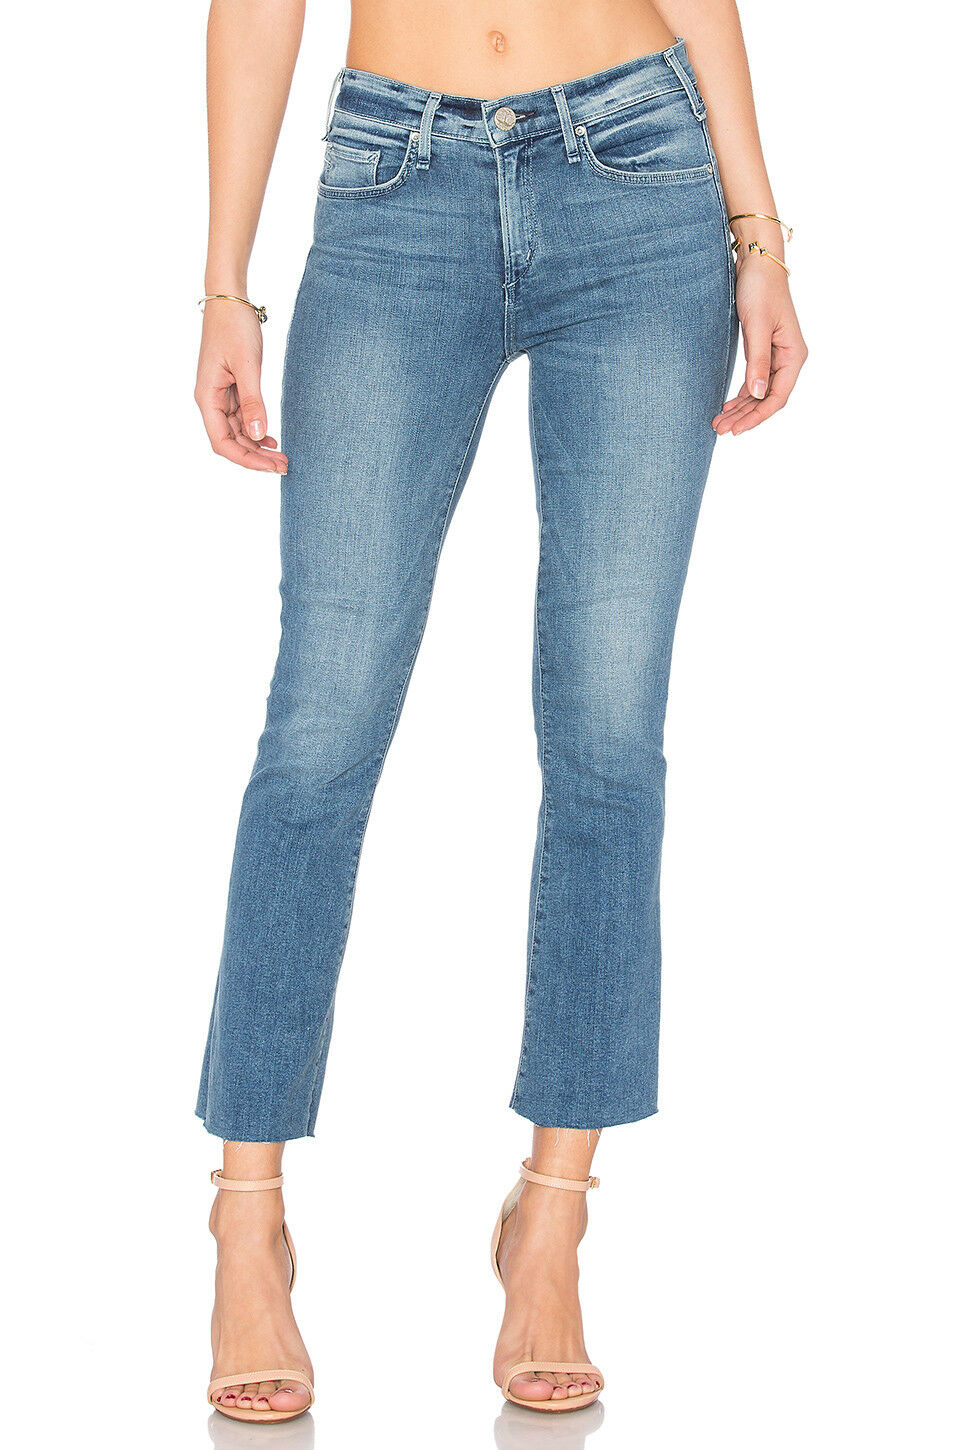 208 NEW Mcguire Denim Majorette - Cropped Flare With Raw Hem in Bochert Size 29